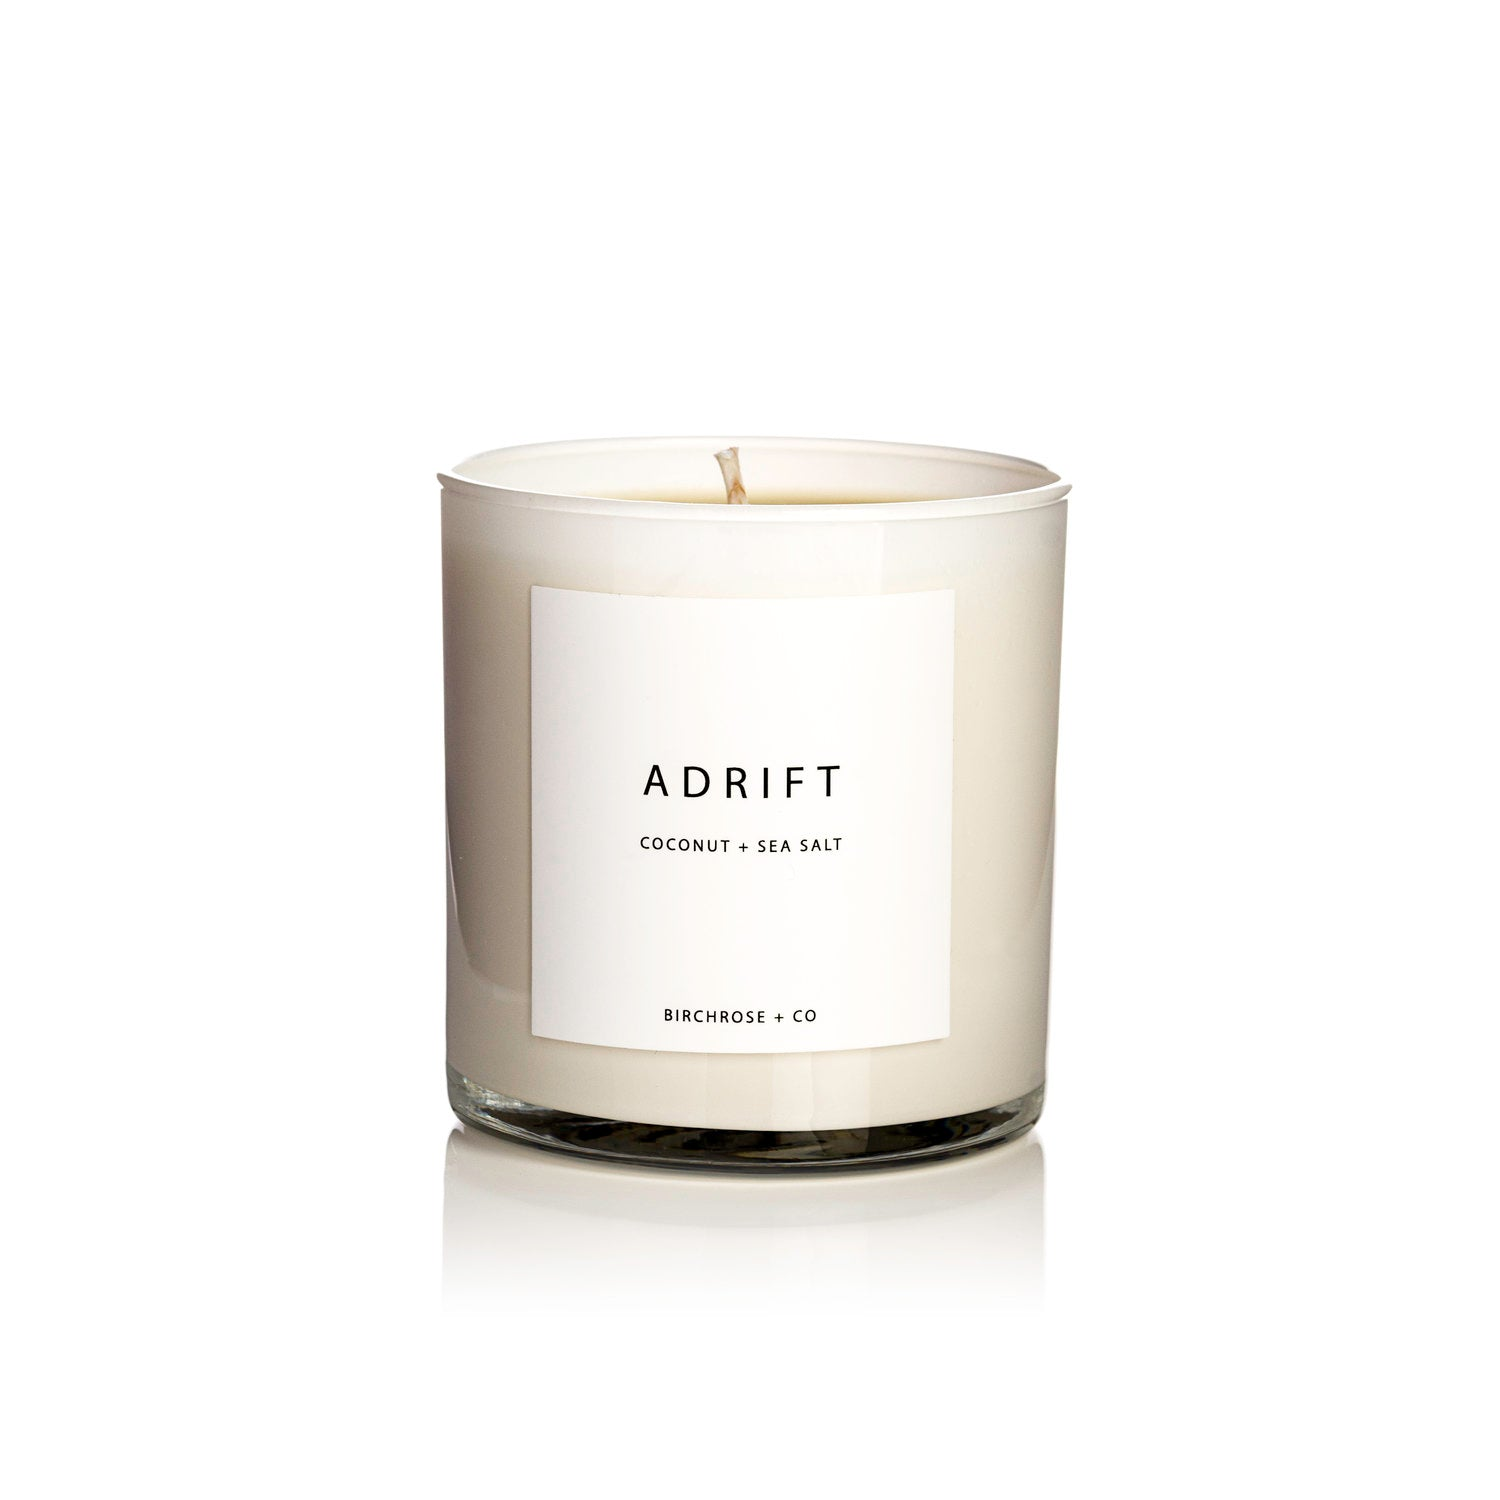 Birchrose + Co. - Adrift Candle